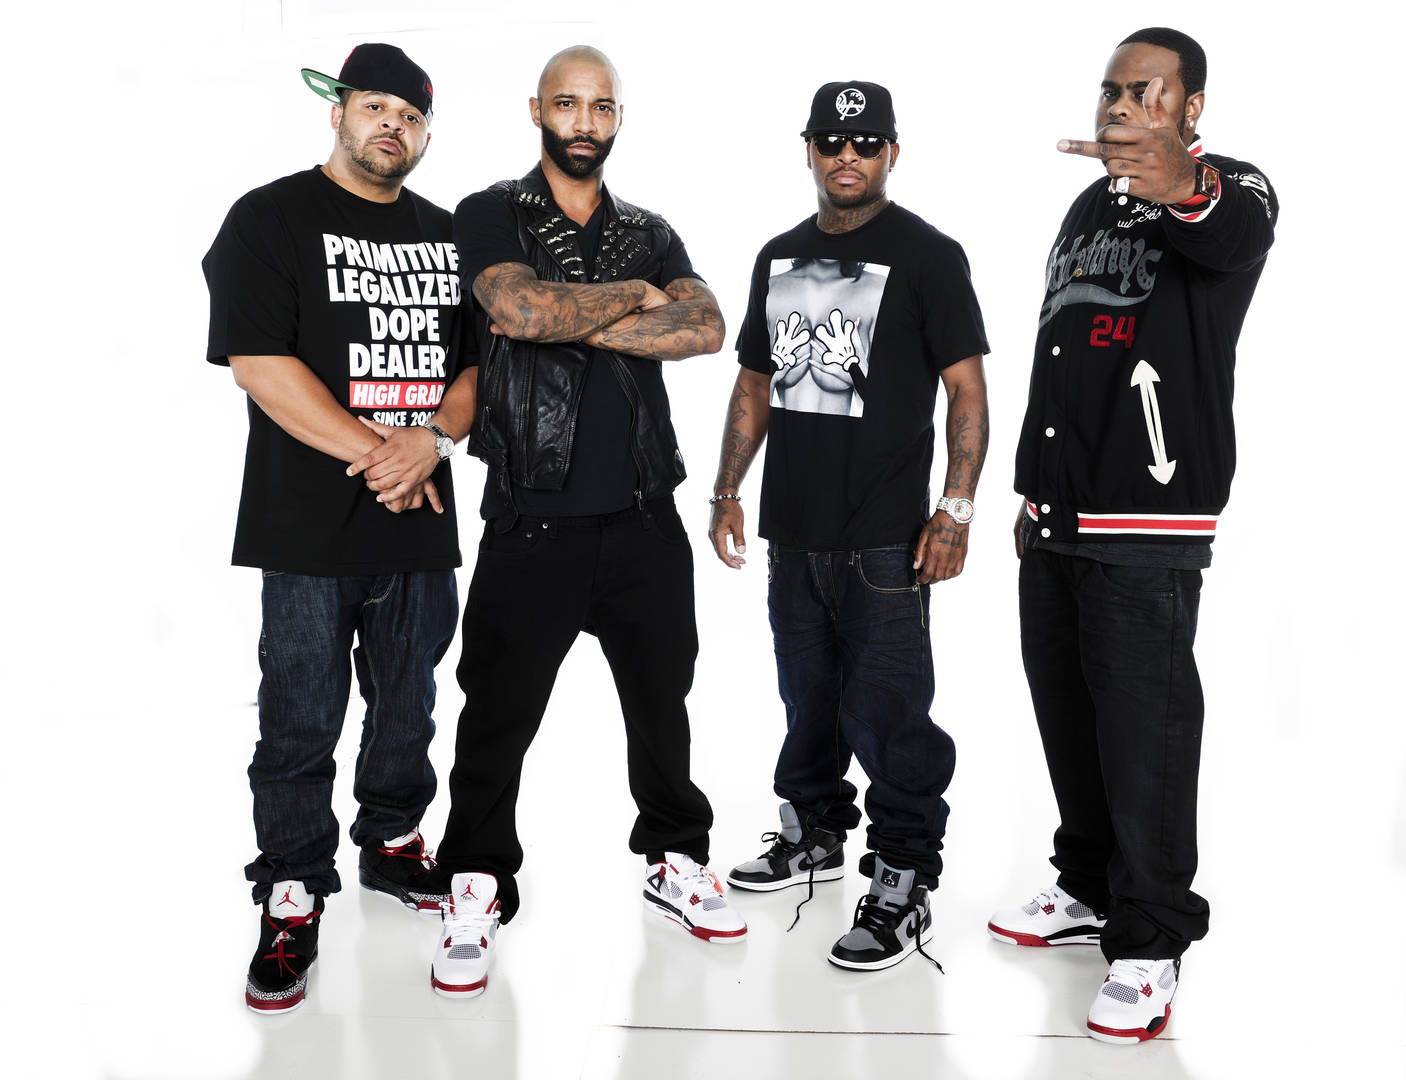 Joe Budden Told Slaughterhouse To Replace Him, Speaks On Why He Left The Group